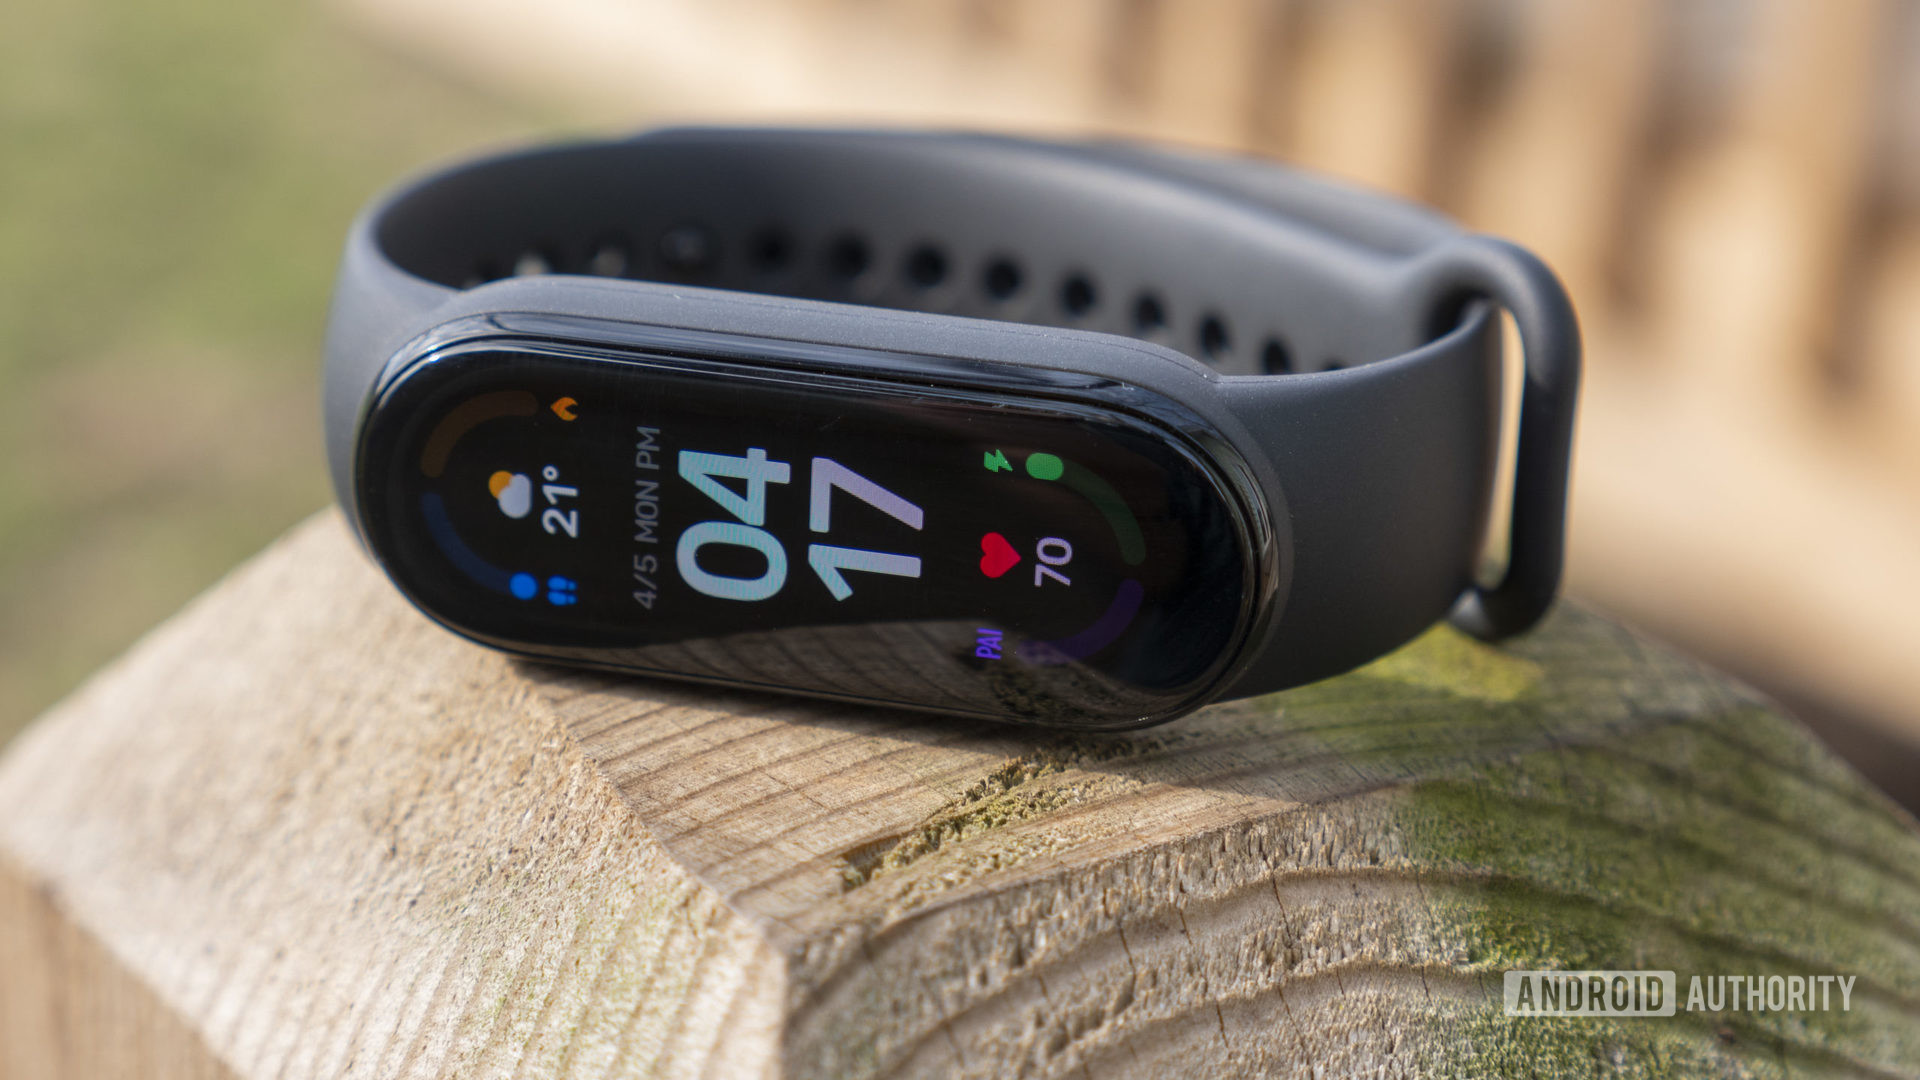 Mi Band 6 , Mi Band 6 Cam ,Mi Band 6 Camera test,Mi Band 6 Screen Repair, Mi Band 6 Camera, Mi Band 6 Unboxing, Mi Band 6 Hands-on